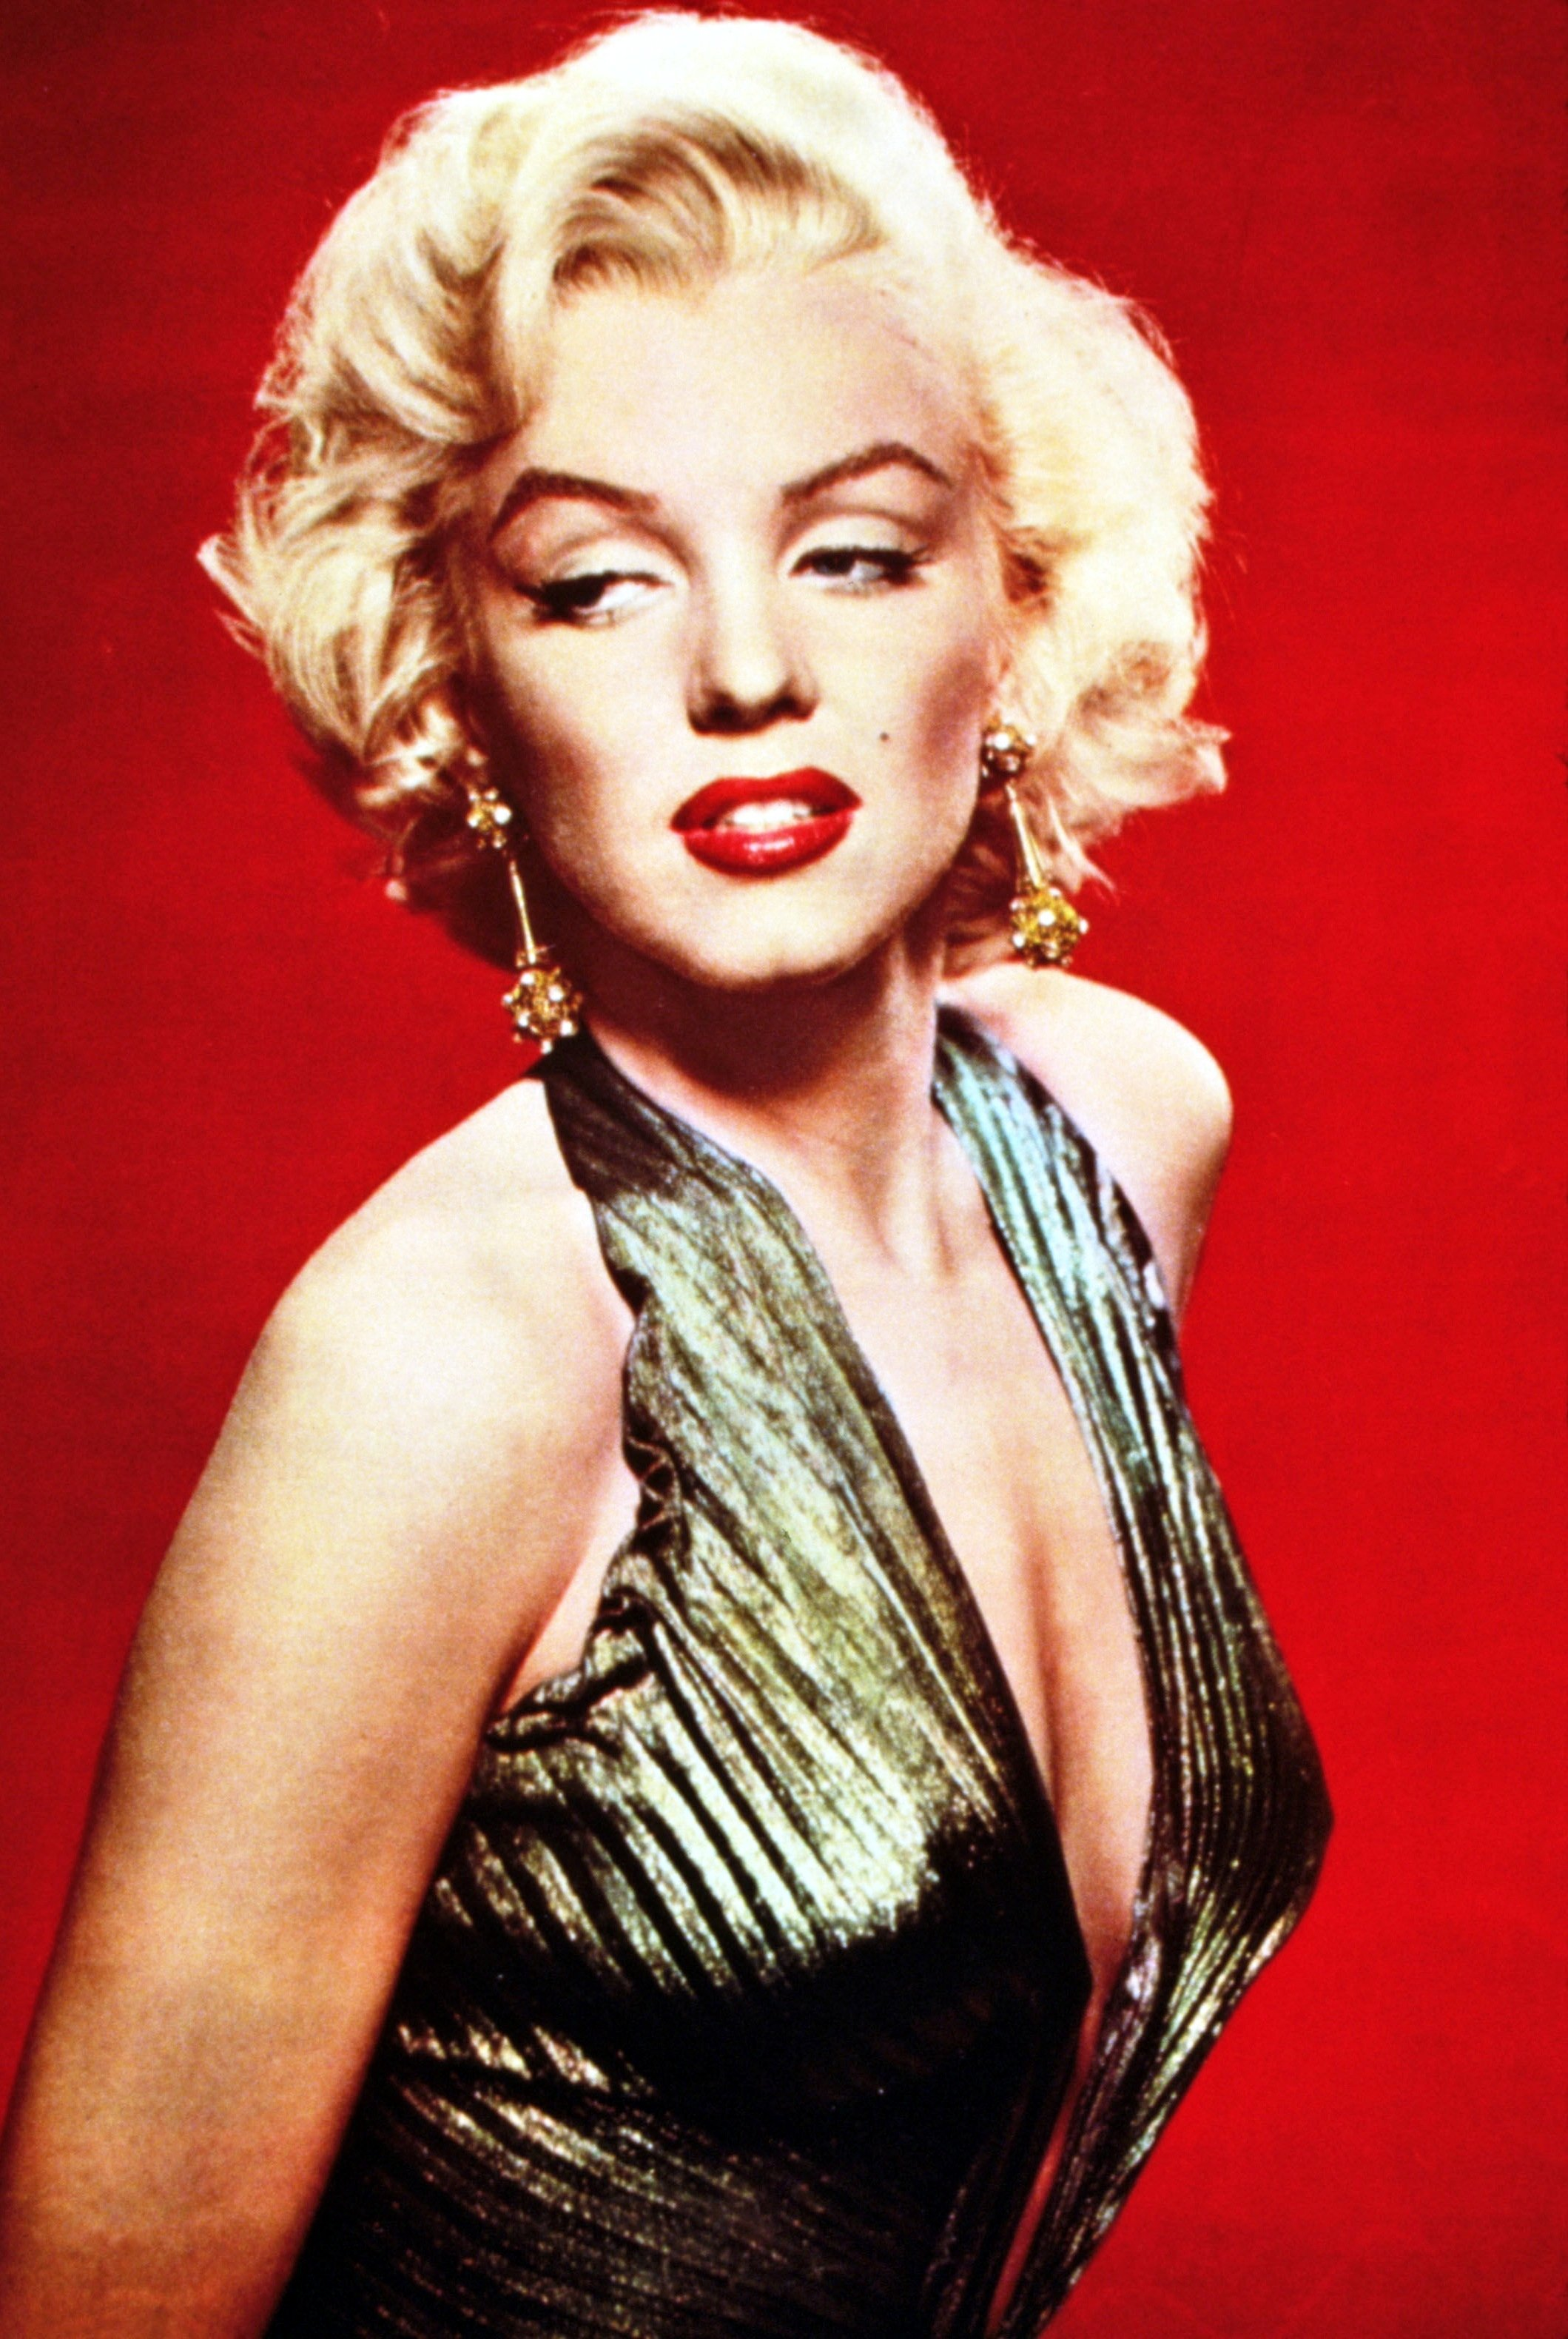 marilyn saintvil english David levi celebrity entertainment news network please remember to sign the david levi celebrity entertainment news network guest book view my guestbook.